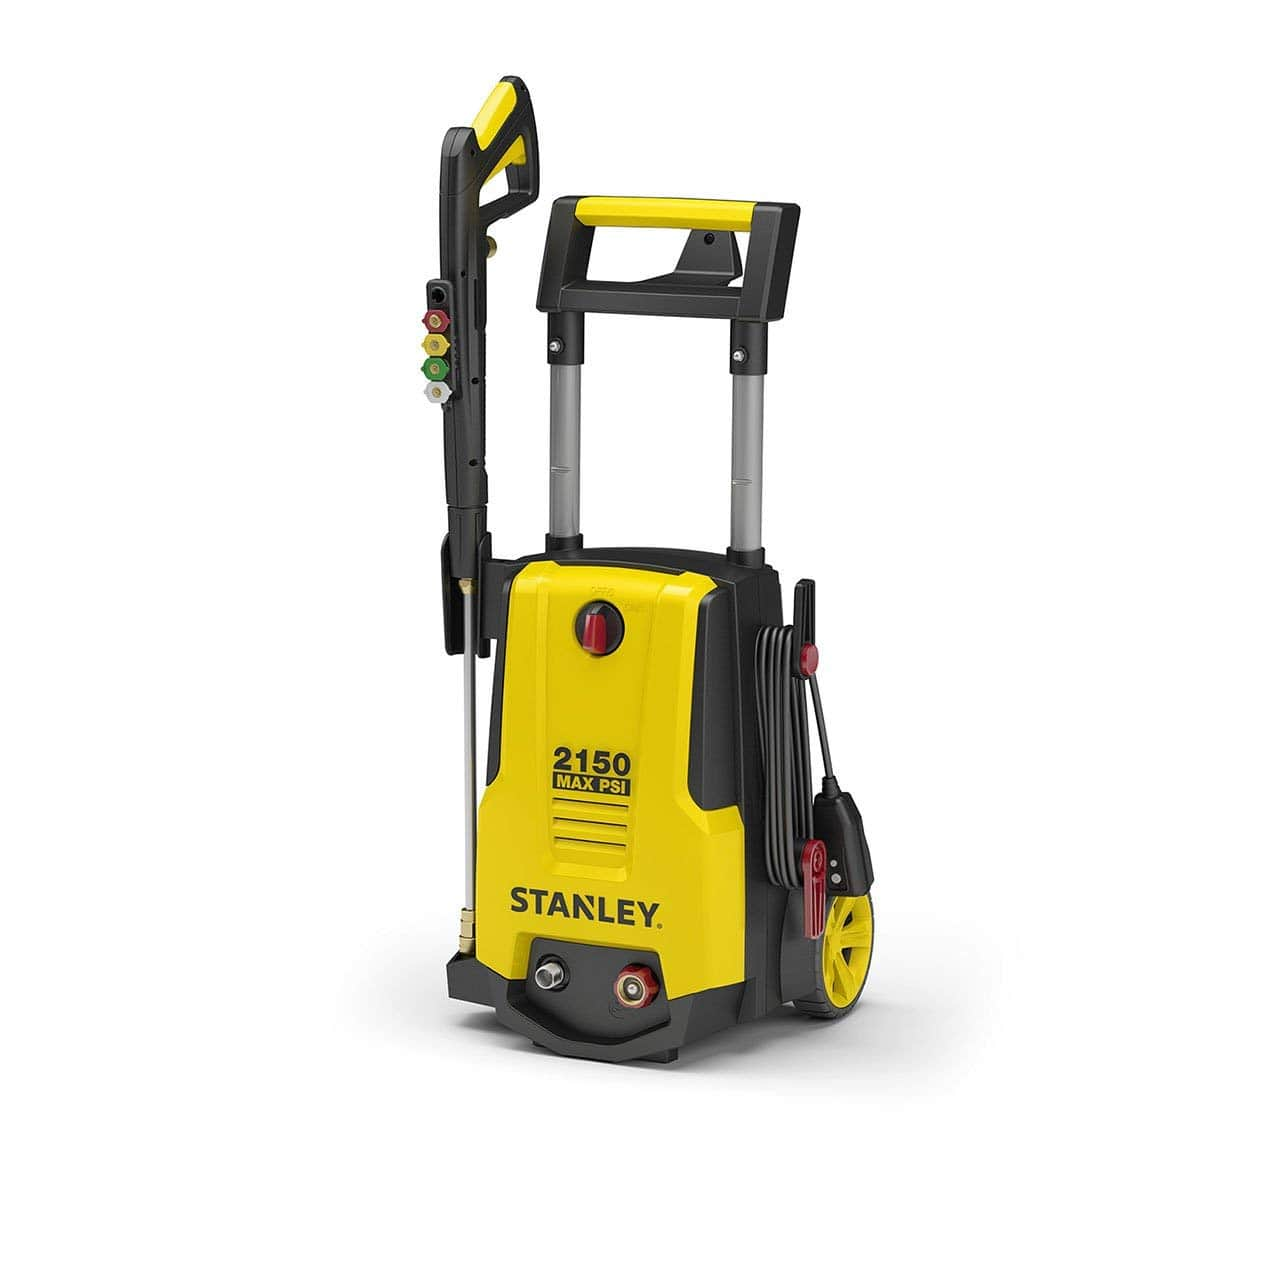 Stanley SHP2150 Electric Pressure Washer With Spray Gun, Medium, Yellow $118.12